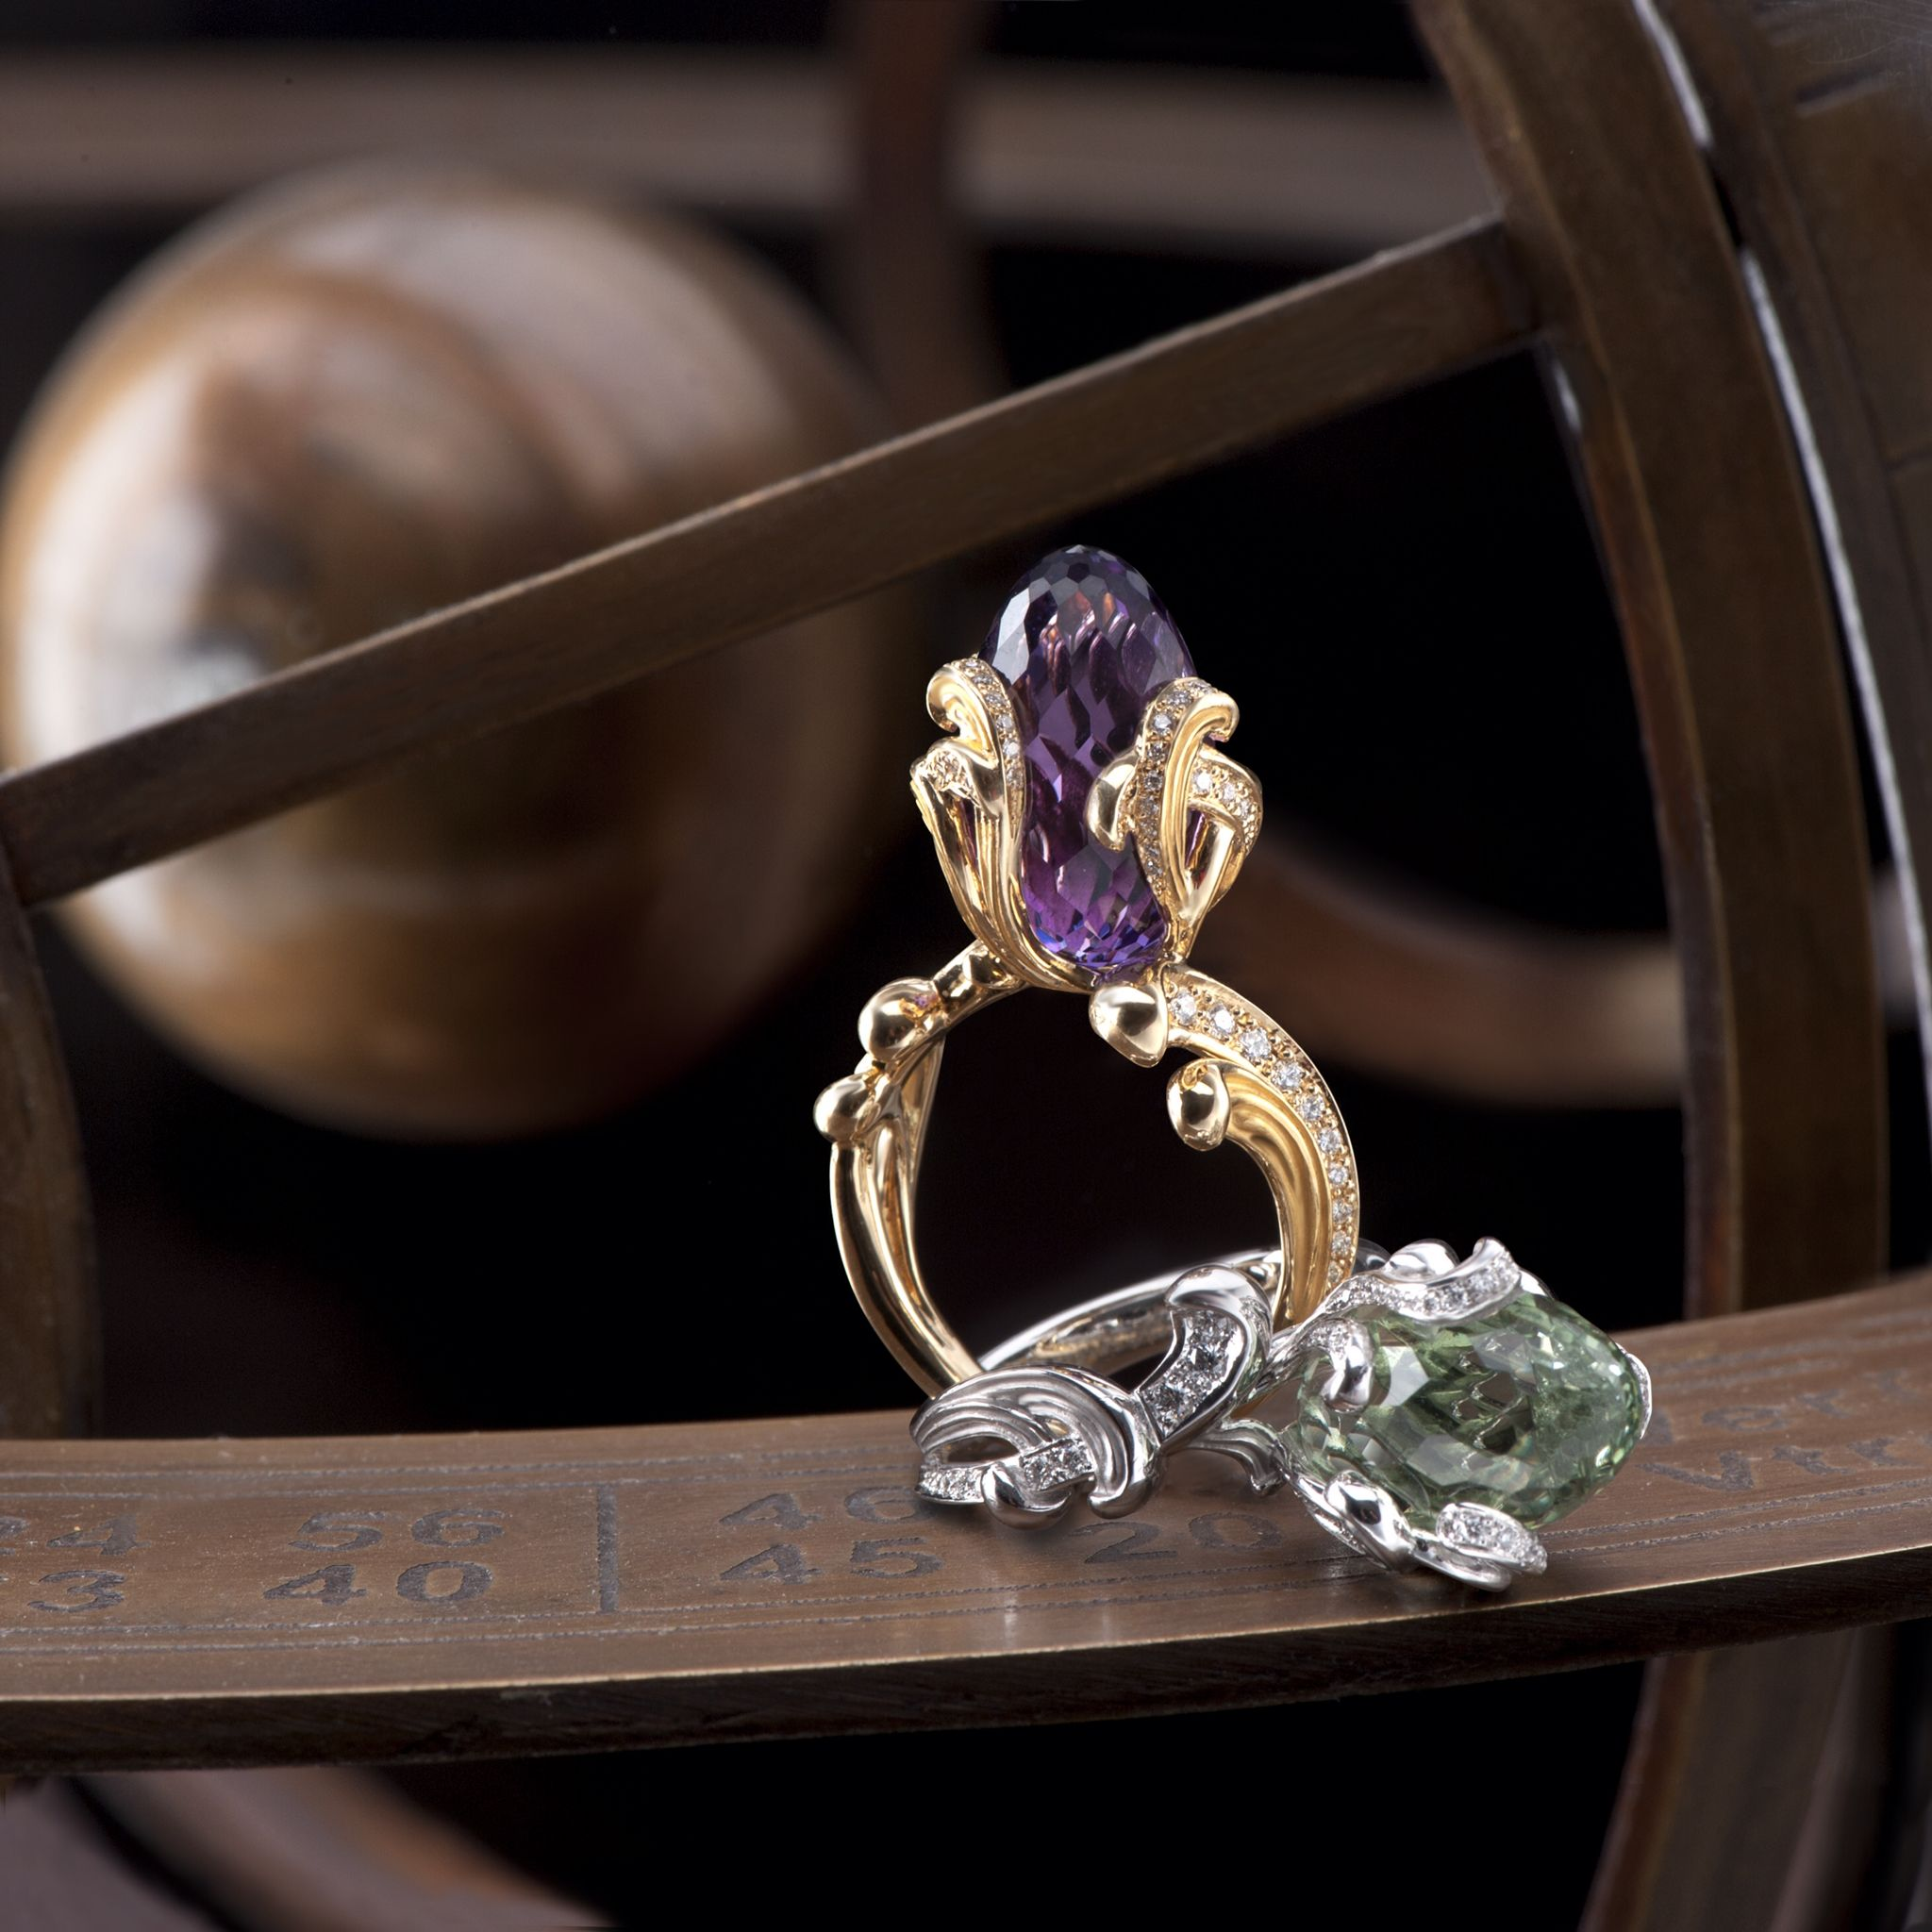 White gold diamond ring piaget luxury jewellery g34ut300 - The Scrolls Of The Origen Medium Ring Emulate Flames Of Fire That Surround The Amethyst And